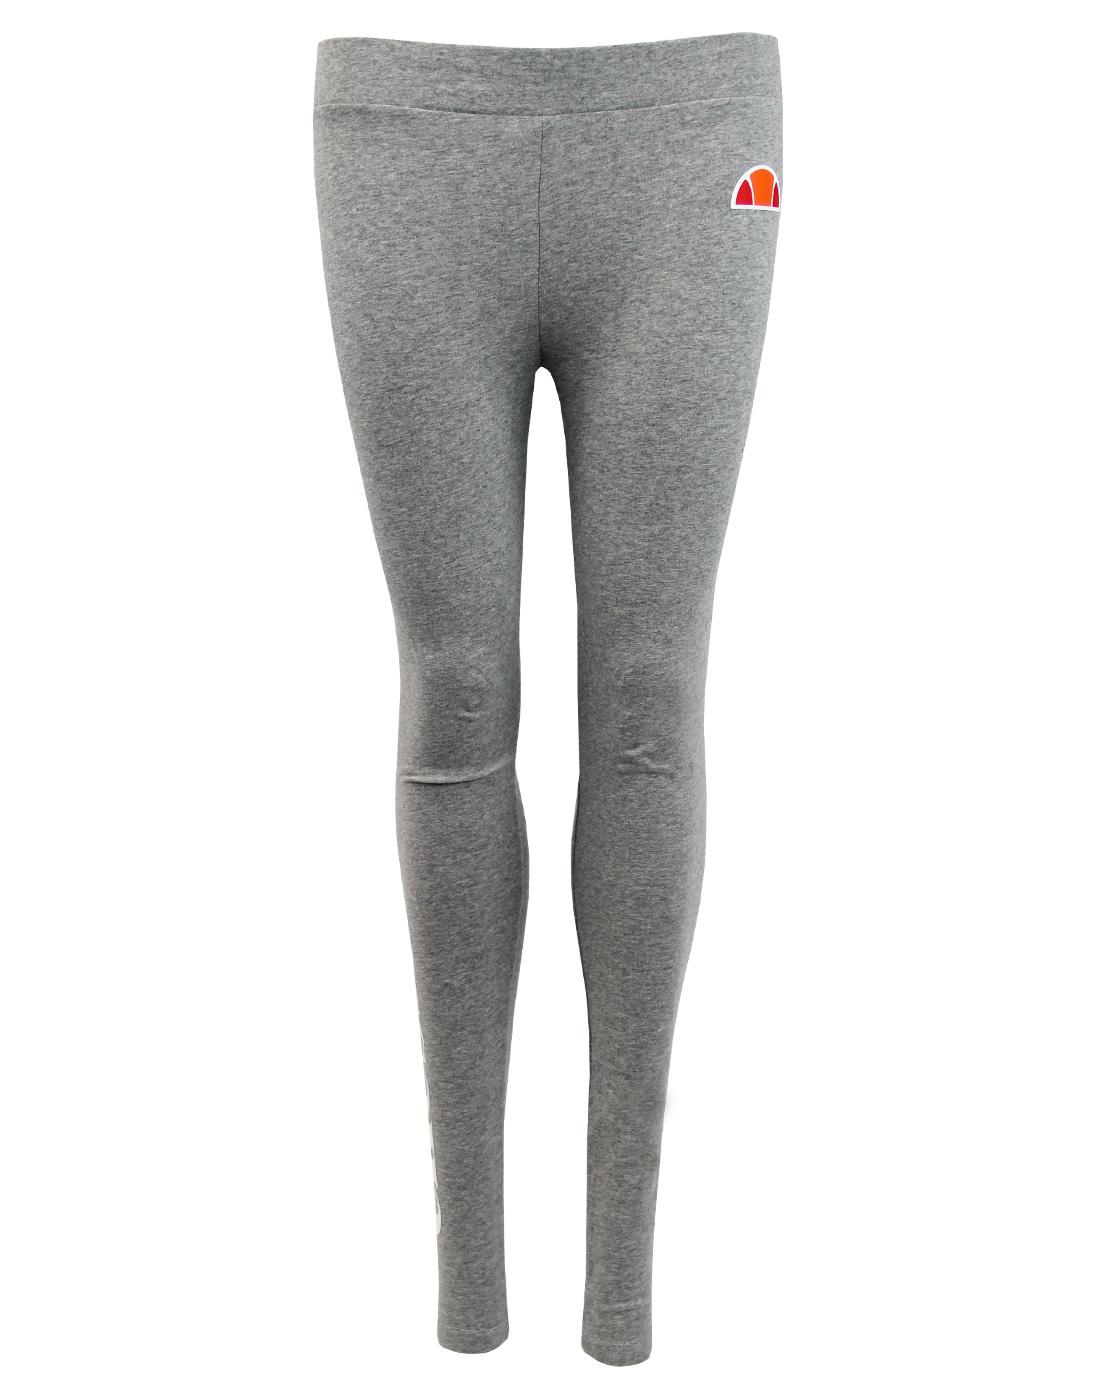 Solos ELLESSE WOMENS Retro 80s Logo Leggings GREY